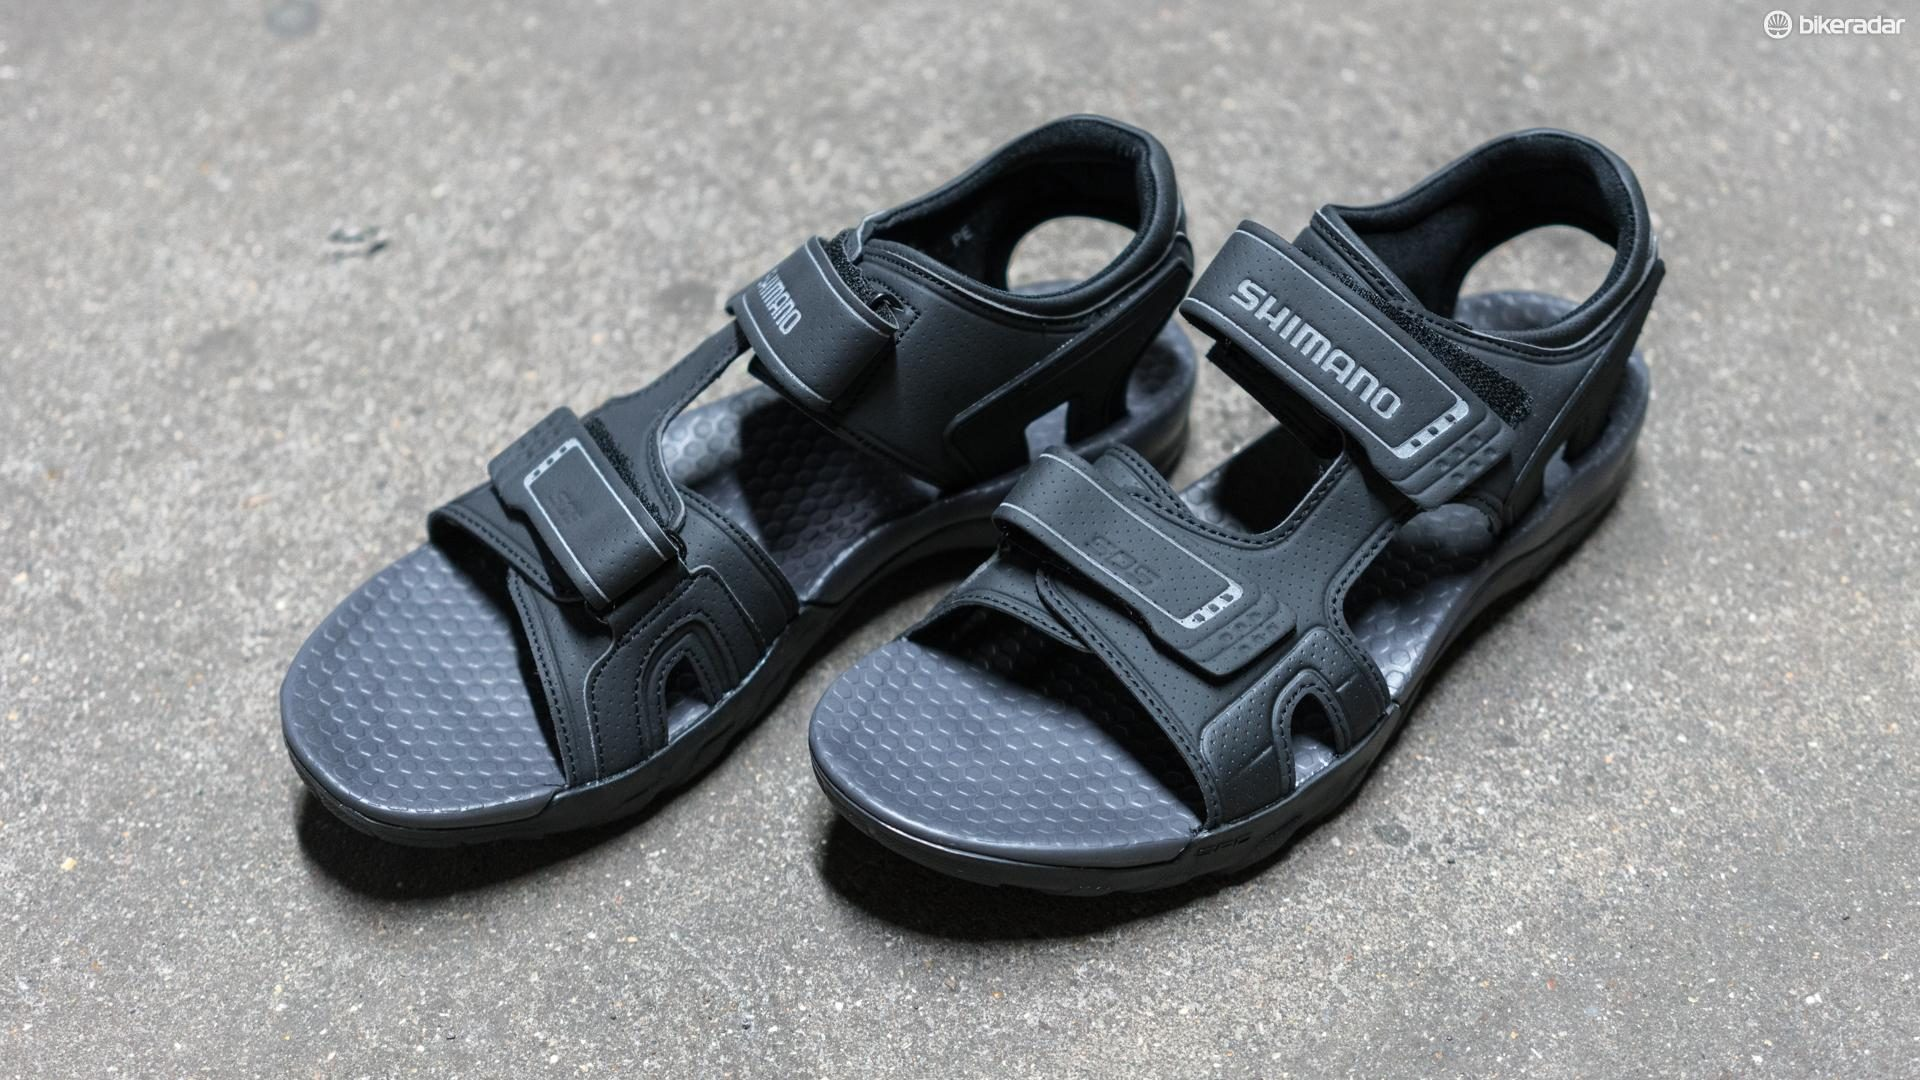 A love letter to the Shimano SPD sandal